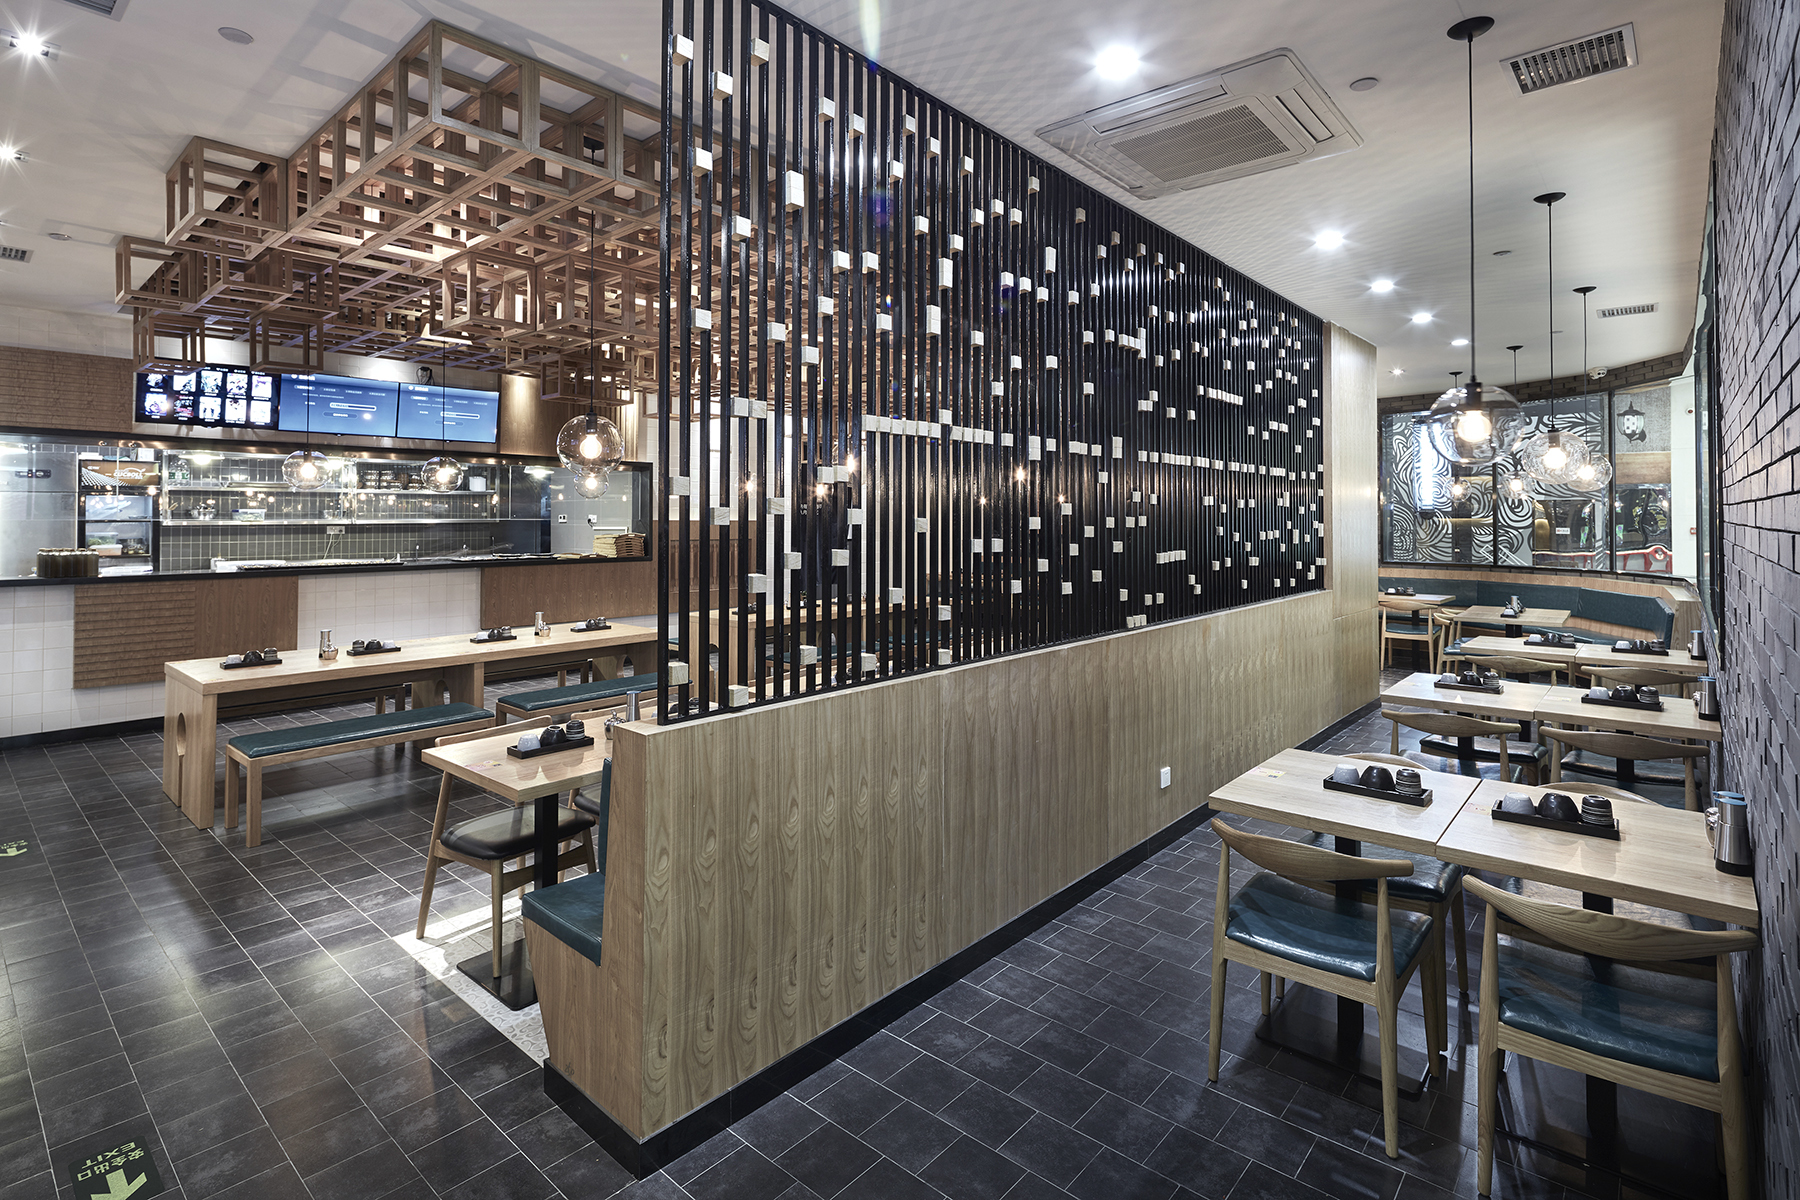 Modern Open Kitchen Design Gallery Of 2016 Restaurant Amp Bar Design Awards Announced 27